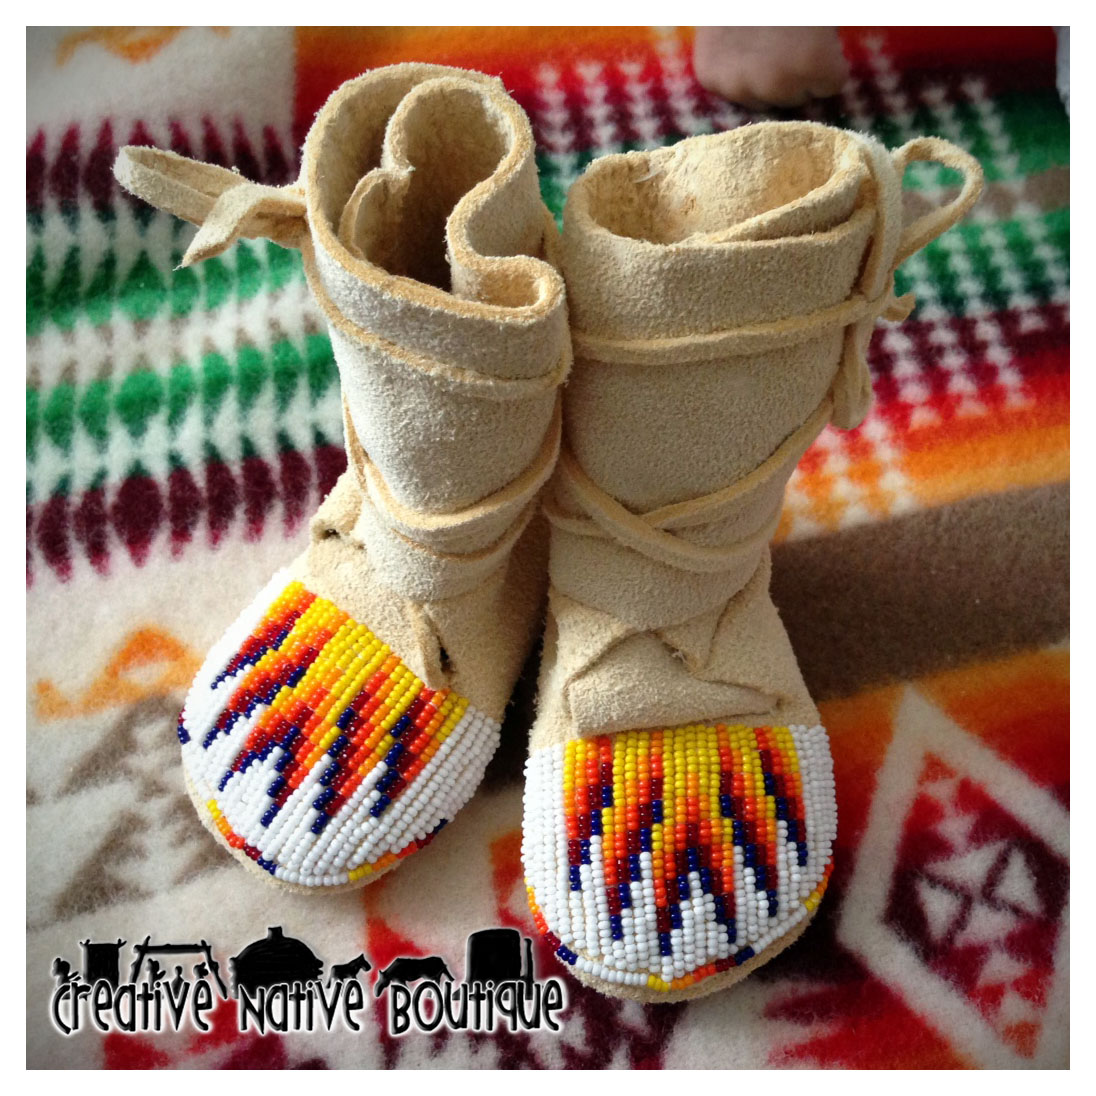 Creative native boutique size 1 beaded high top baby moccasins